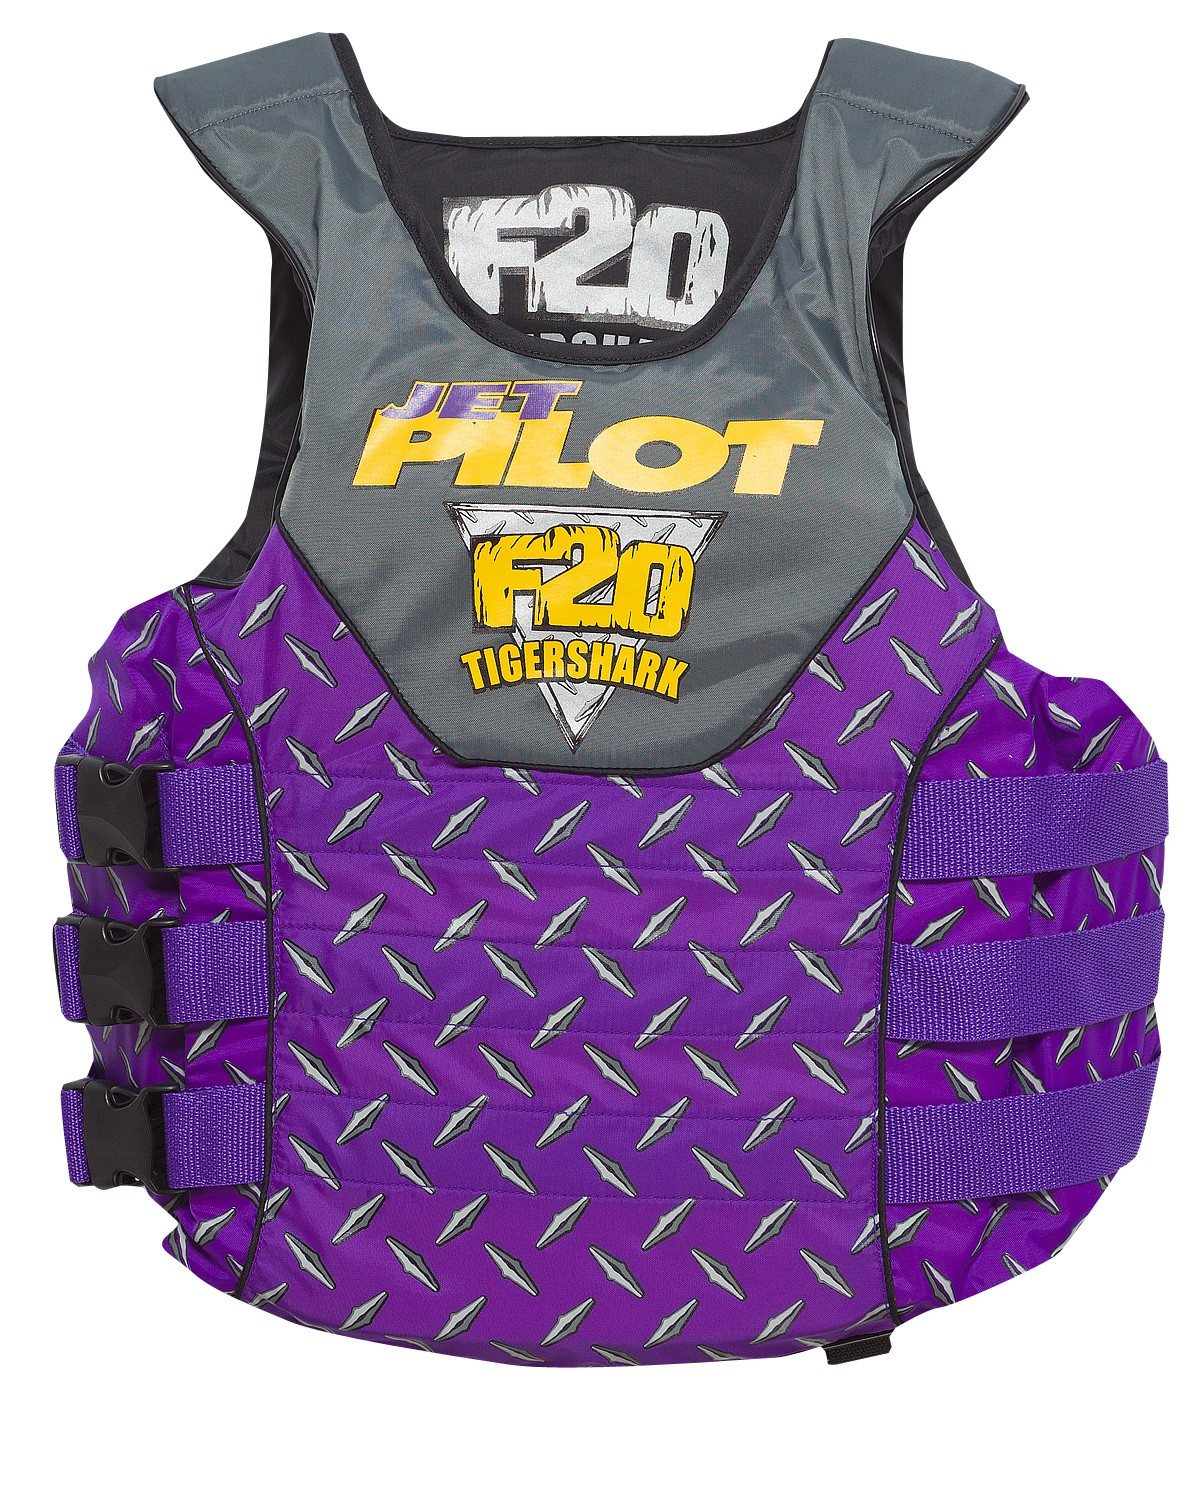 Blowsion Jet Pilot Tigershark Vest Ripper Jp2213